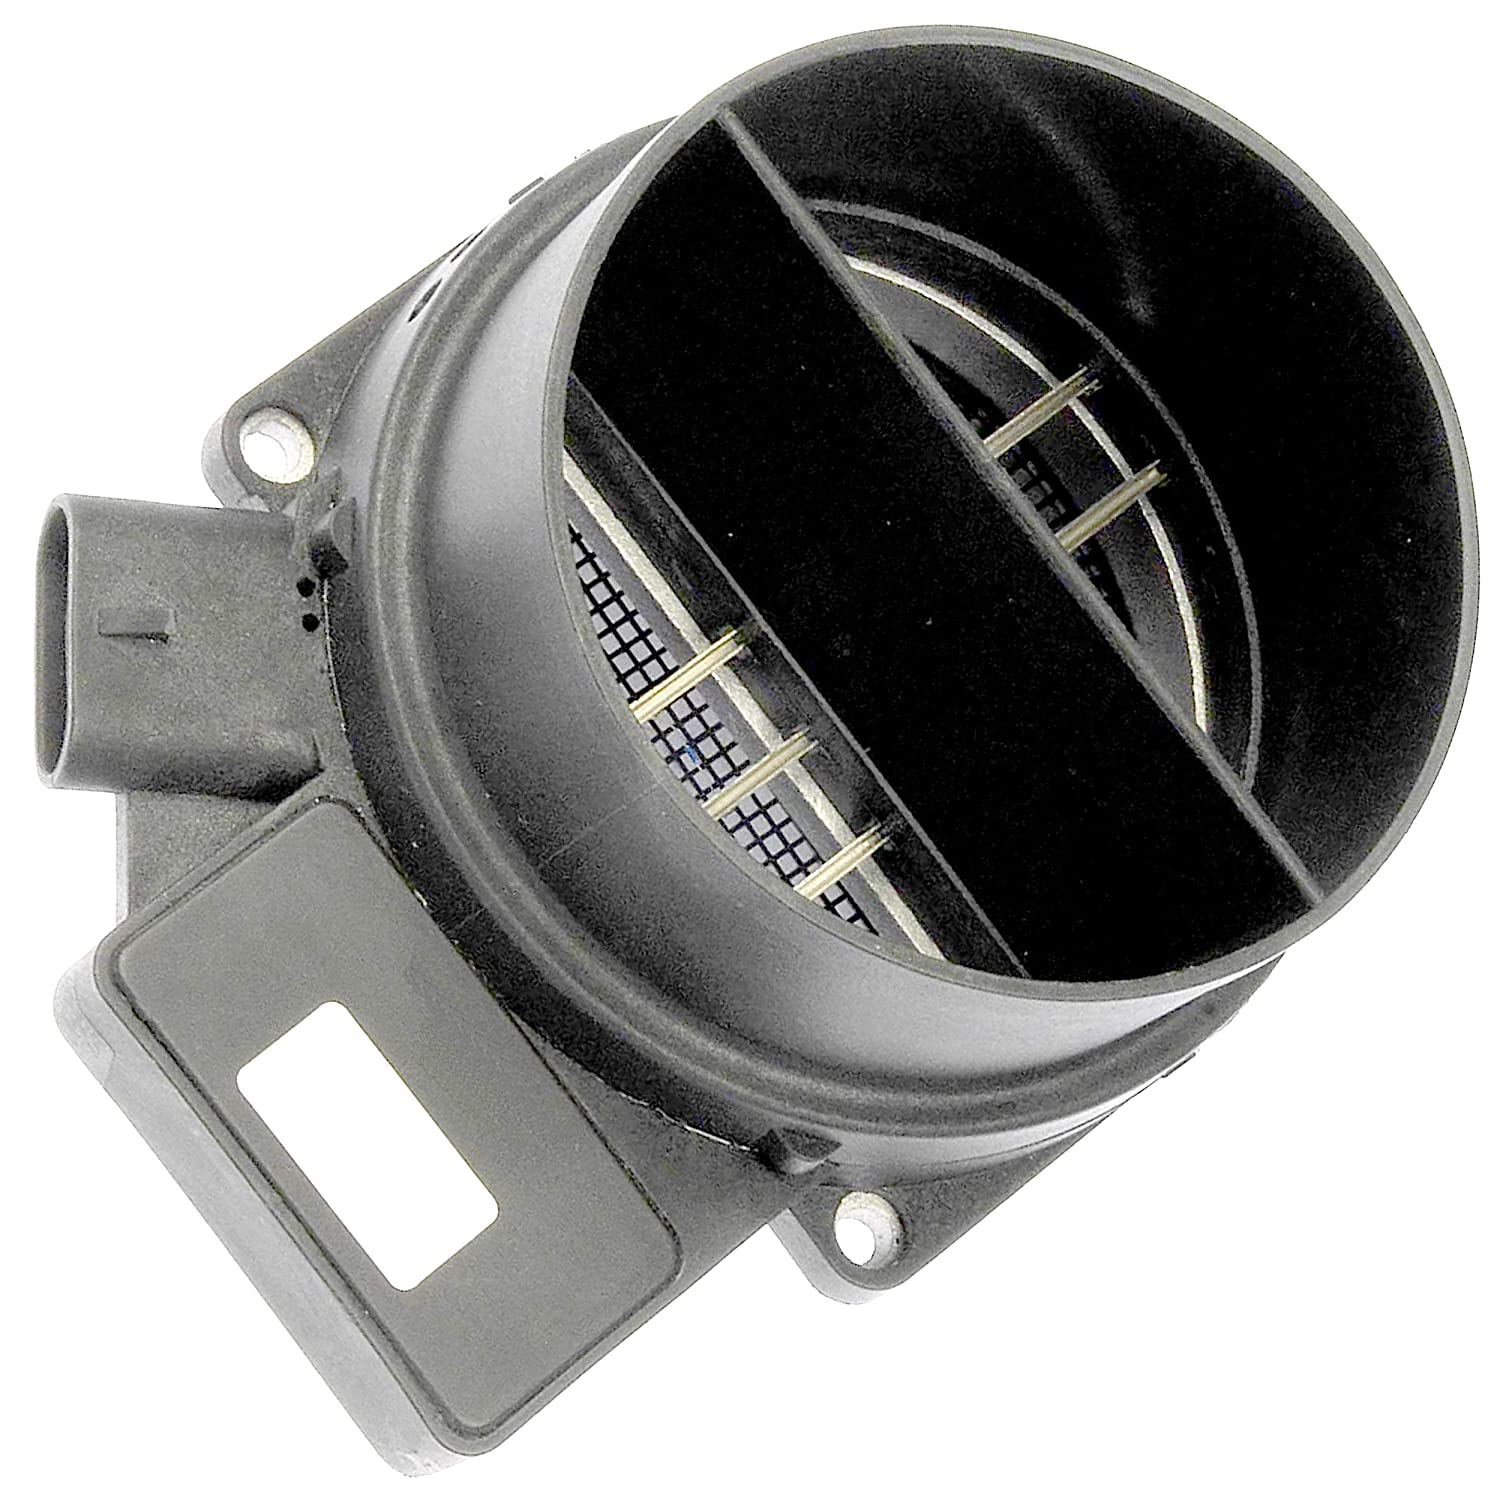 APDTY 028937 Mass Air Flow Sensor MAF Full Assembly Fits Numerous GM Vehicles